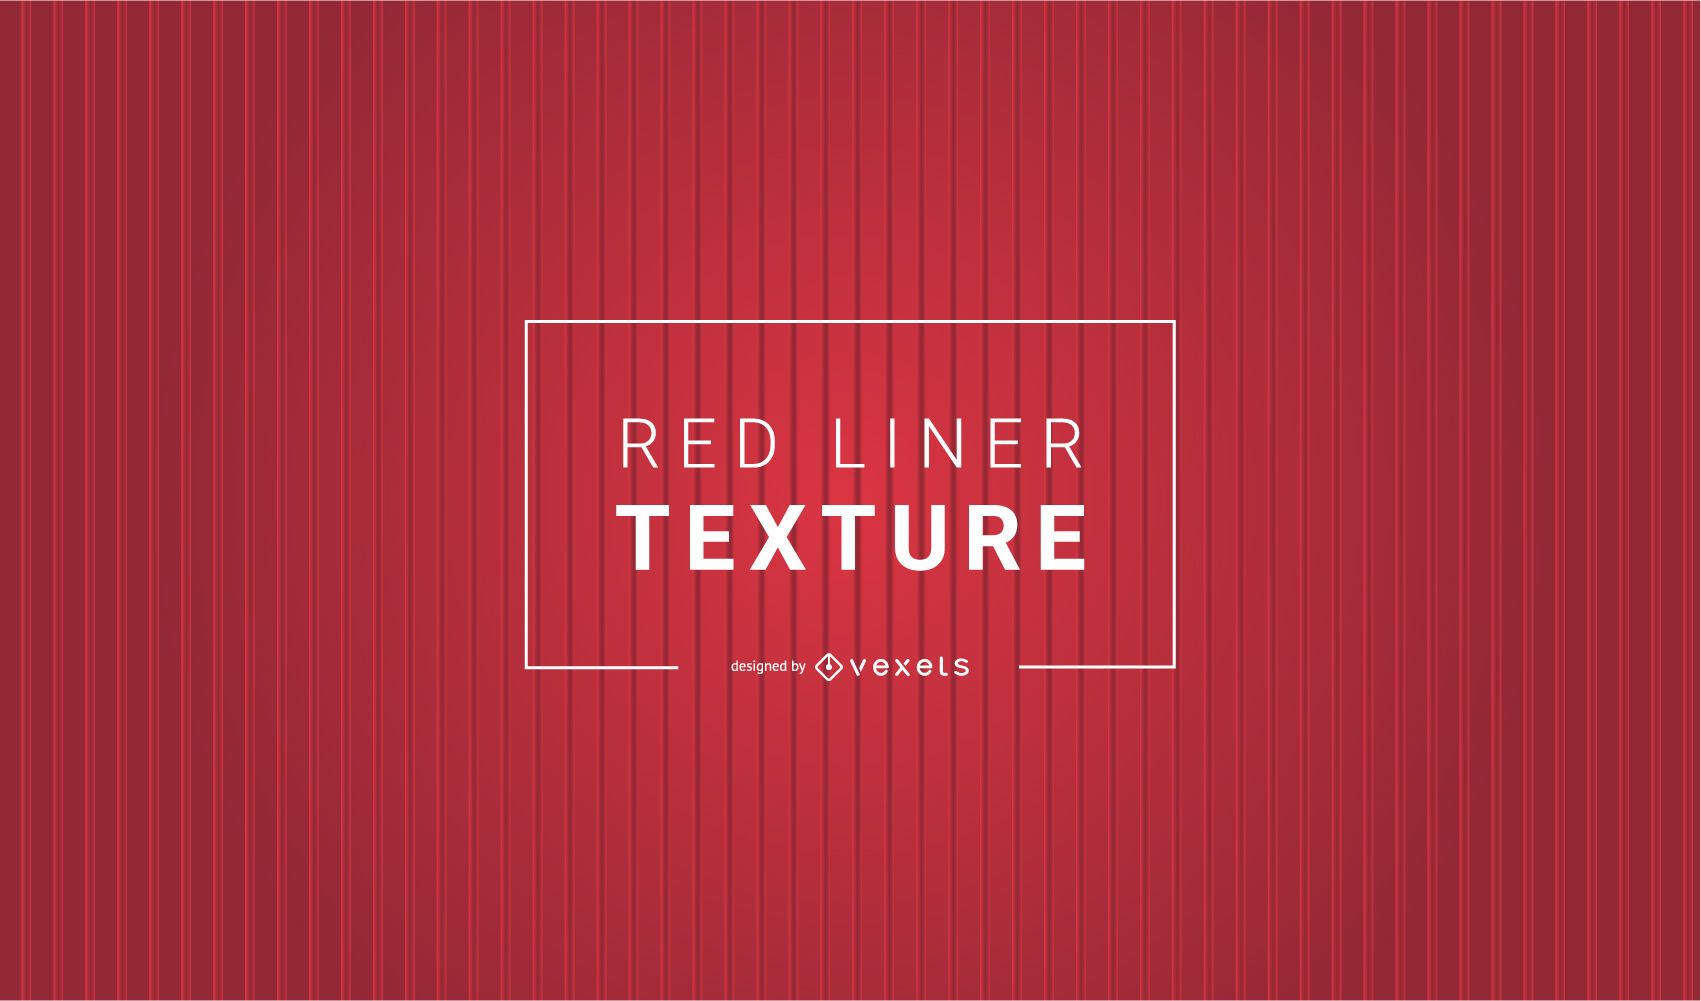 Red Liner Texture AI